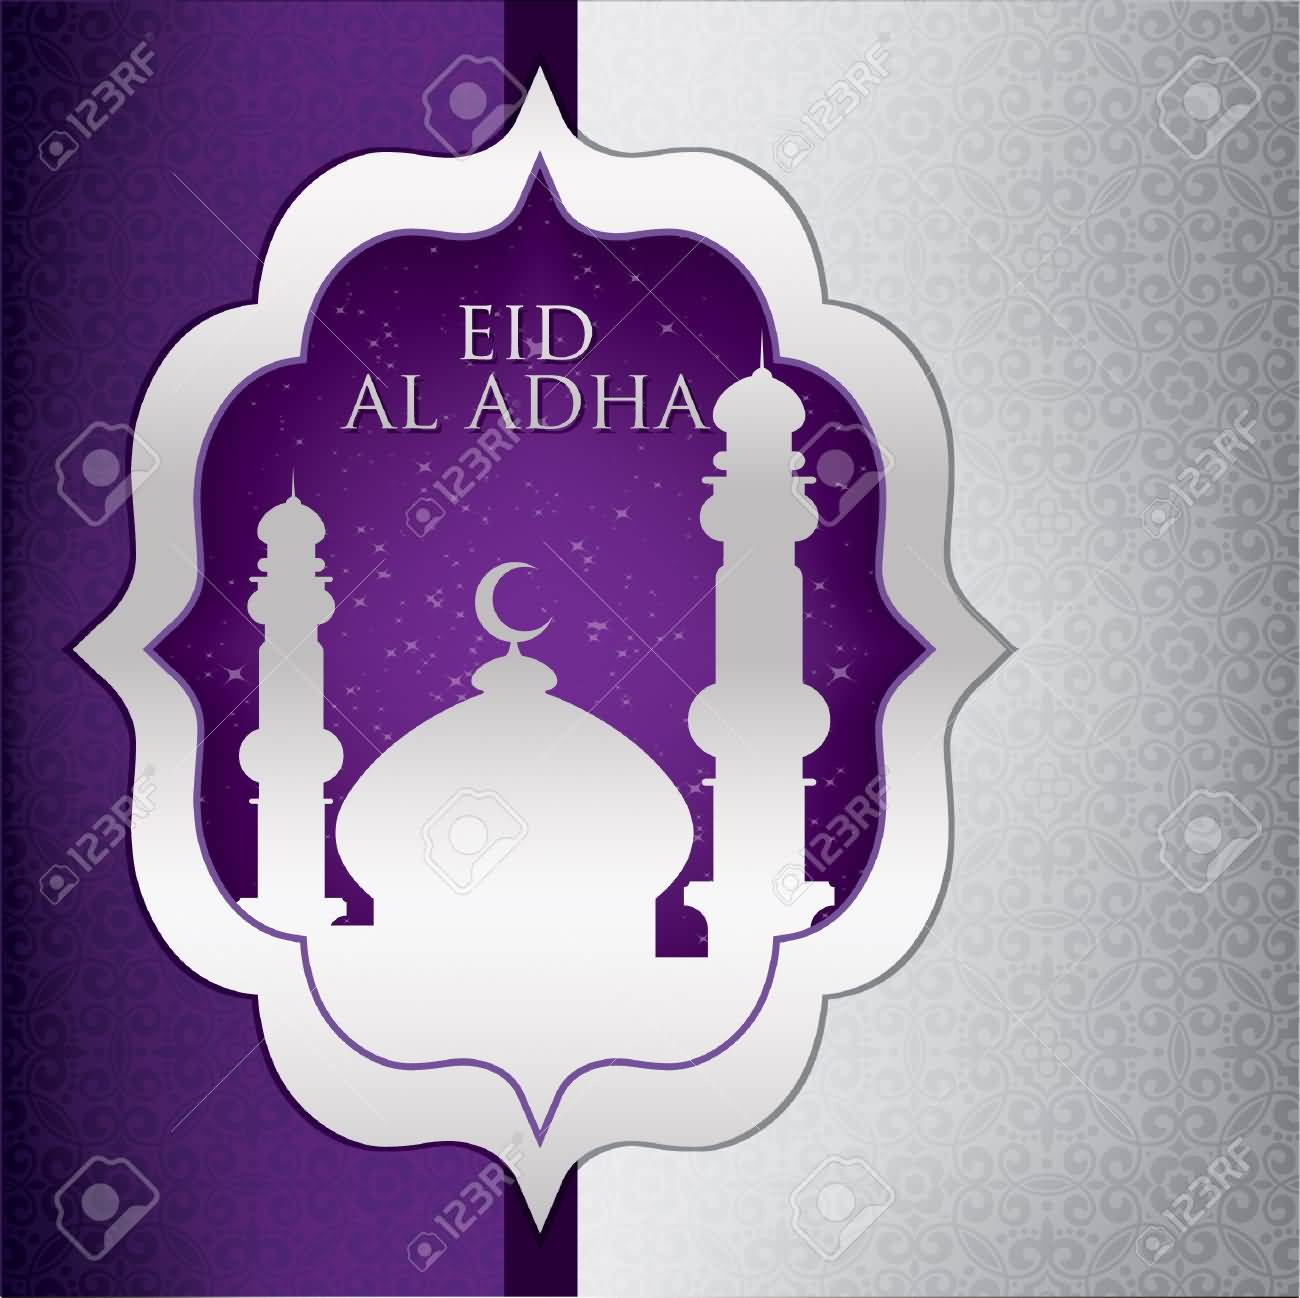 65 best eid ul adha 2016 greeting photos and images eid al adha 2016 greeting card image kristyandbryce Images